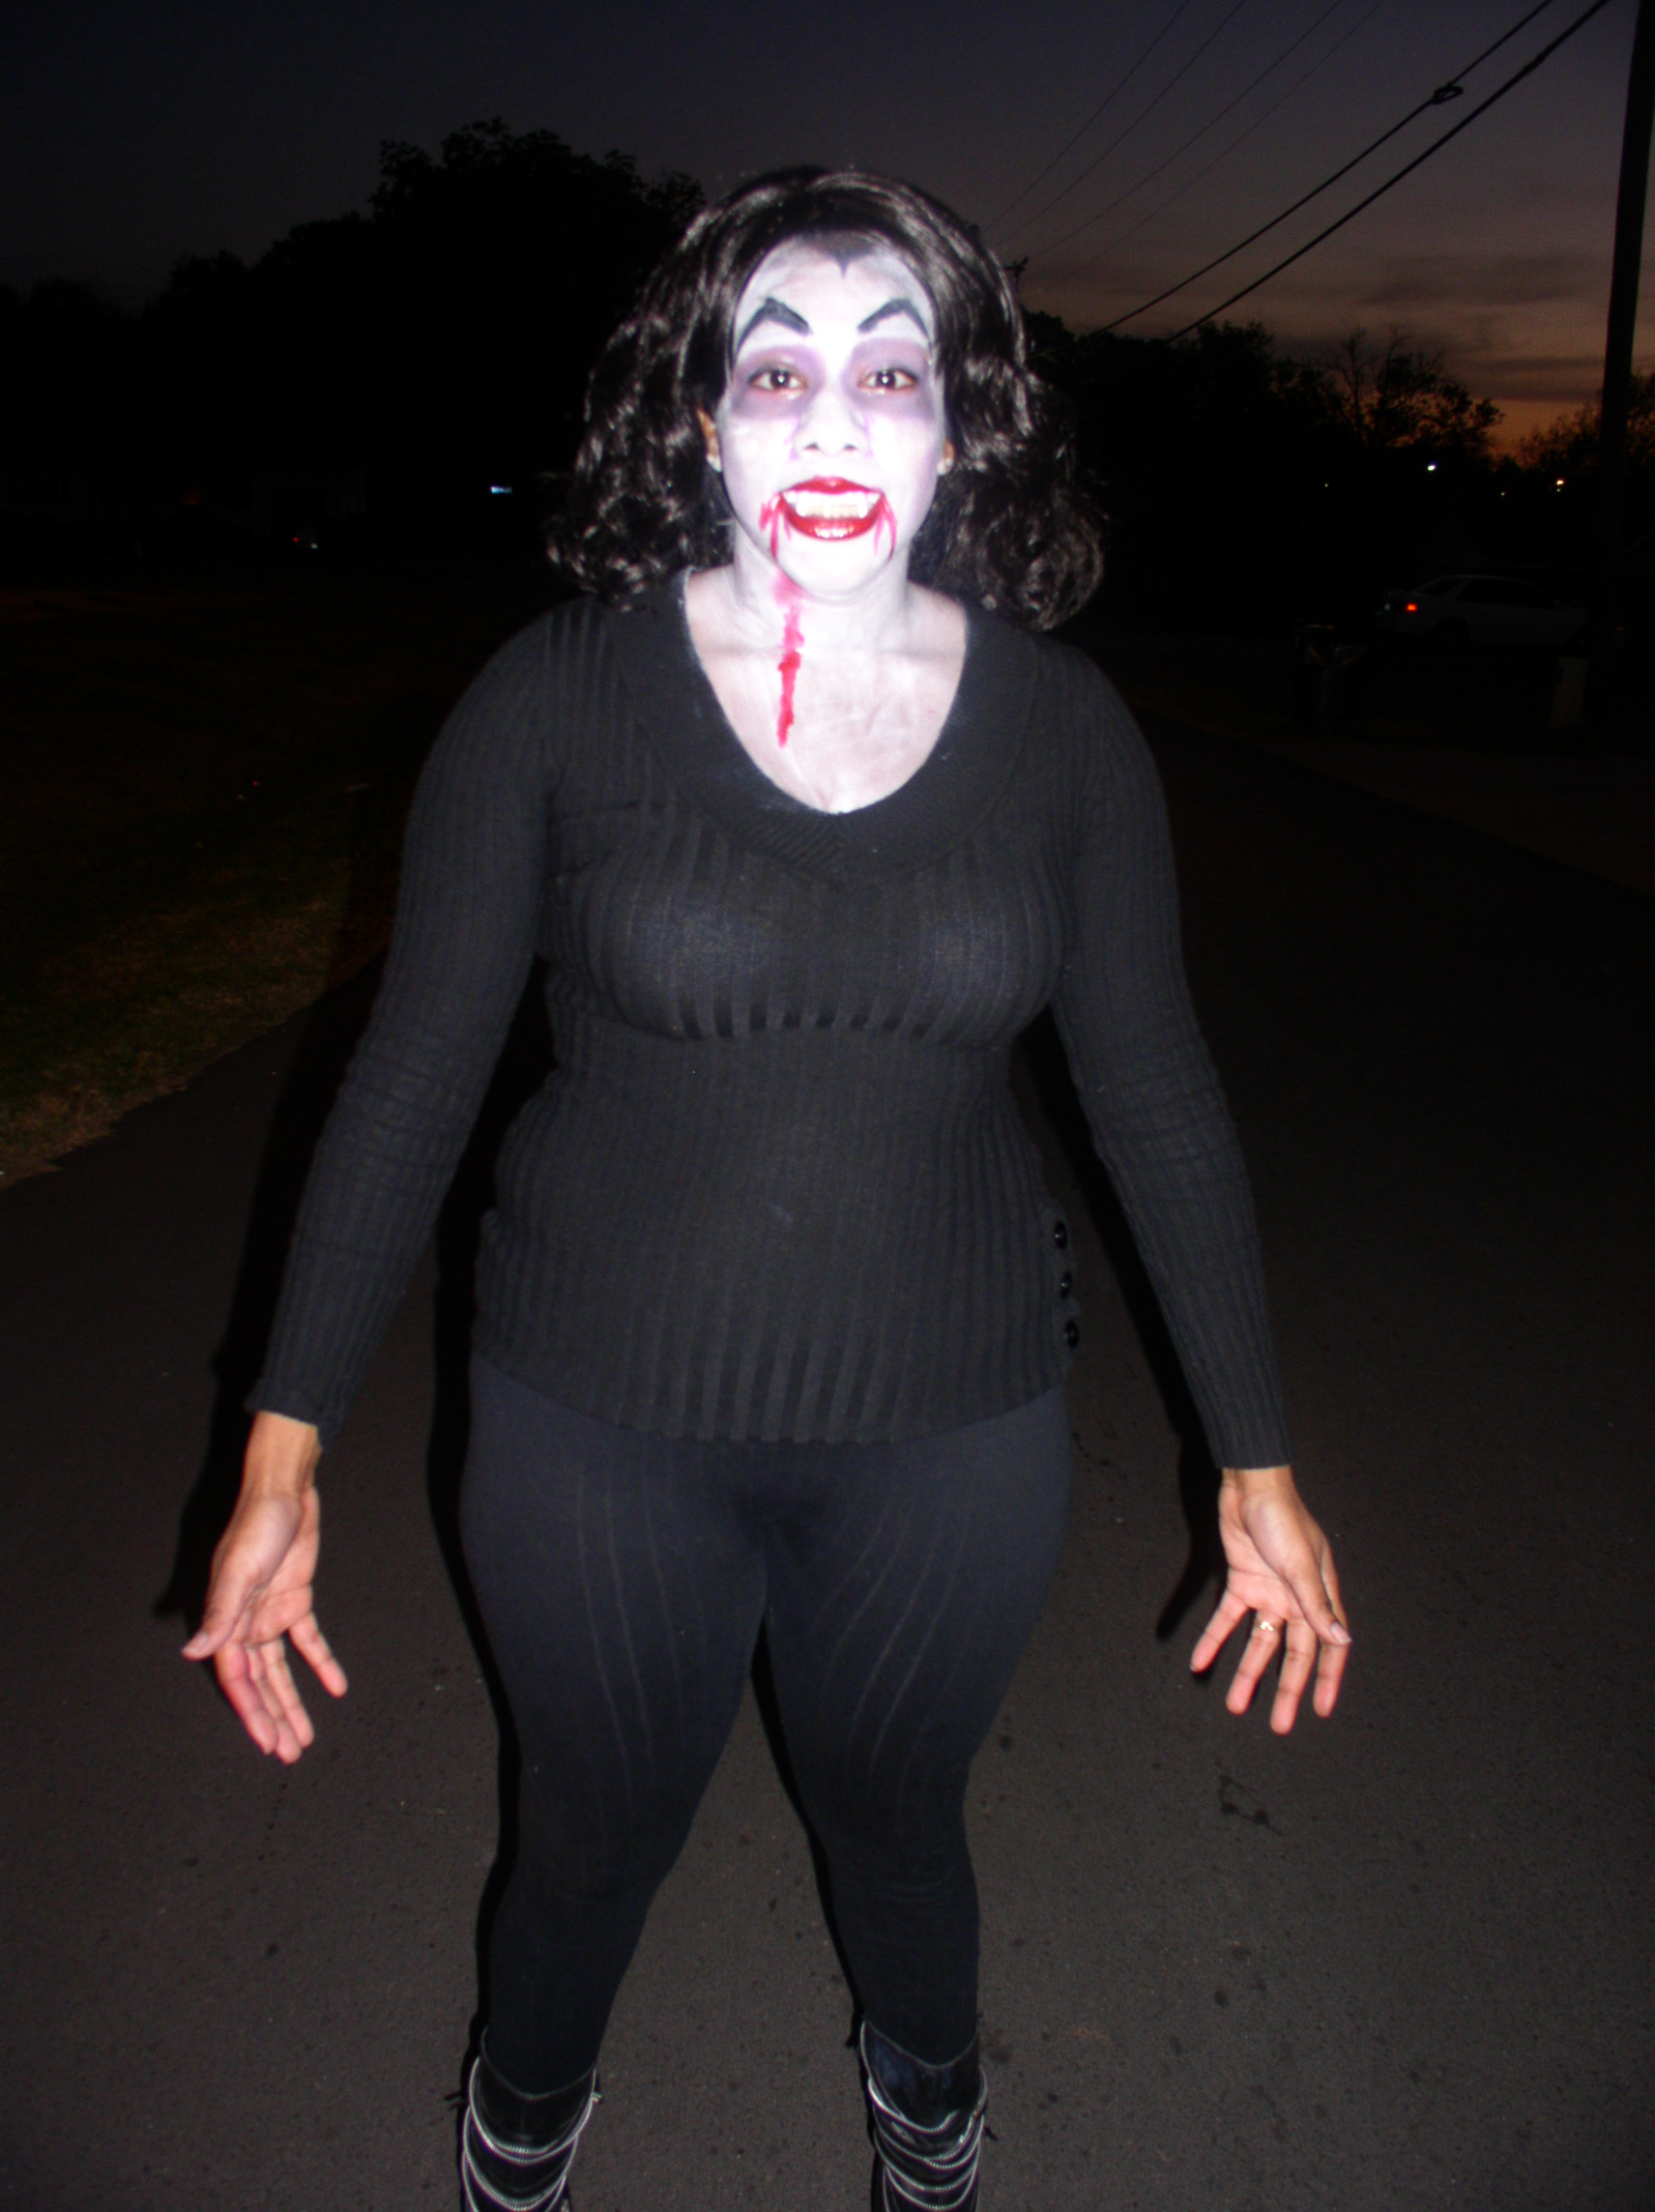 My daughter the vamp